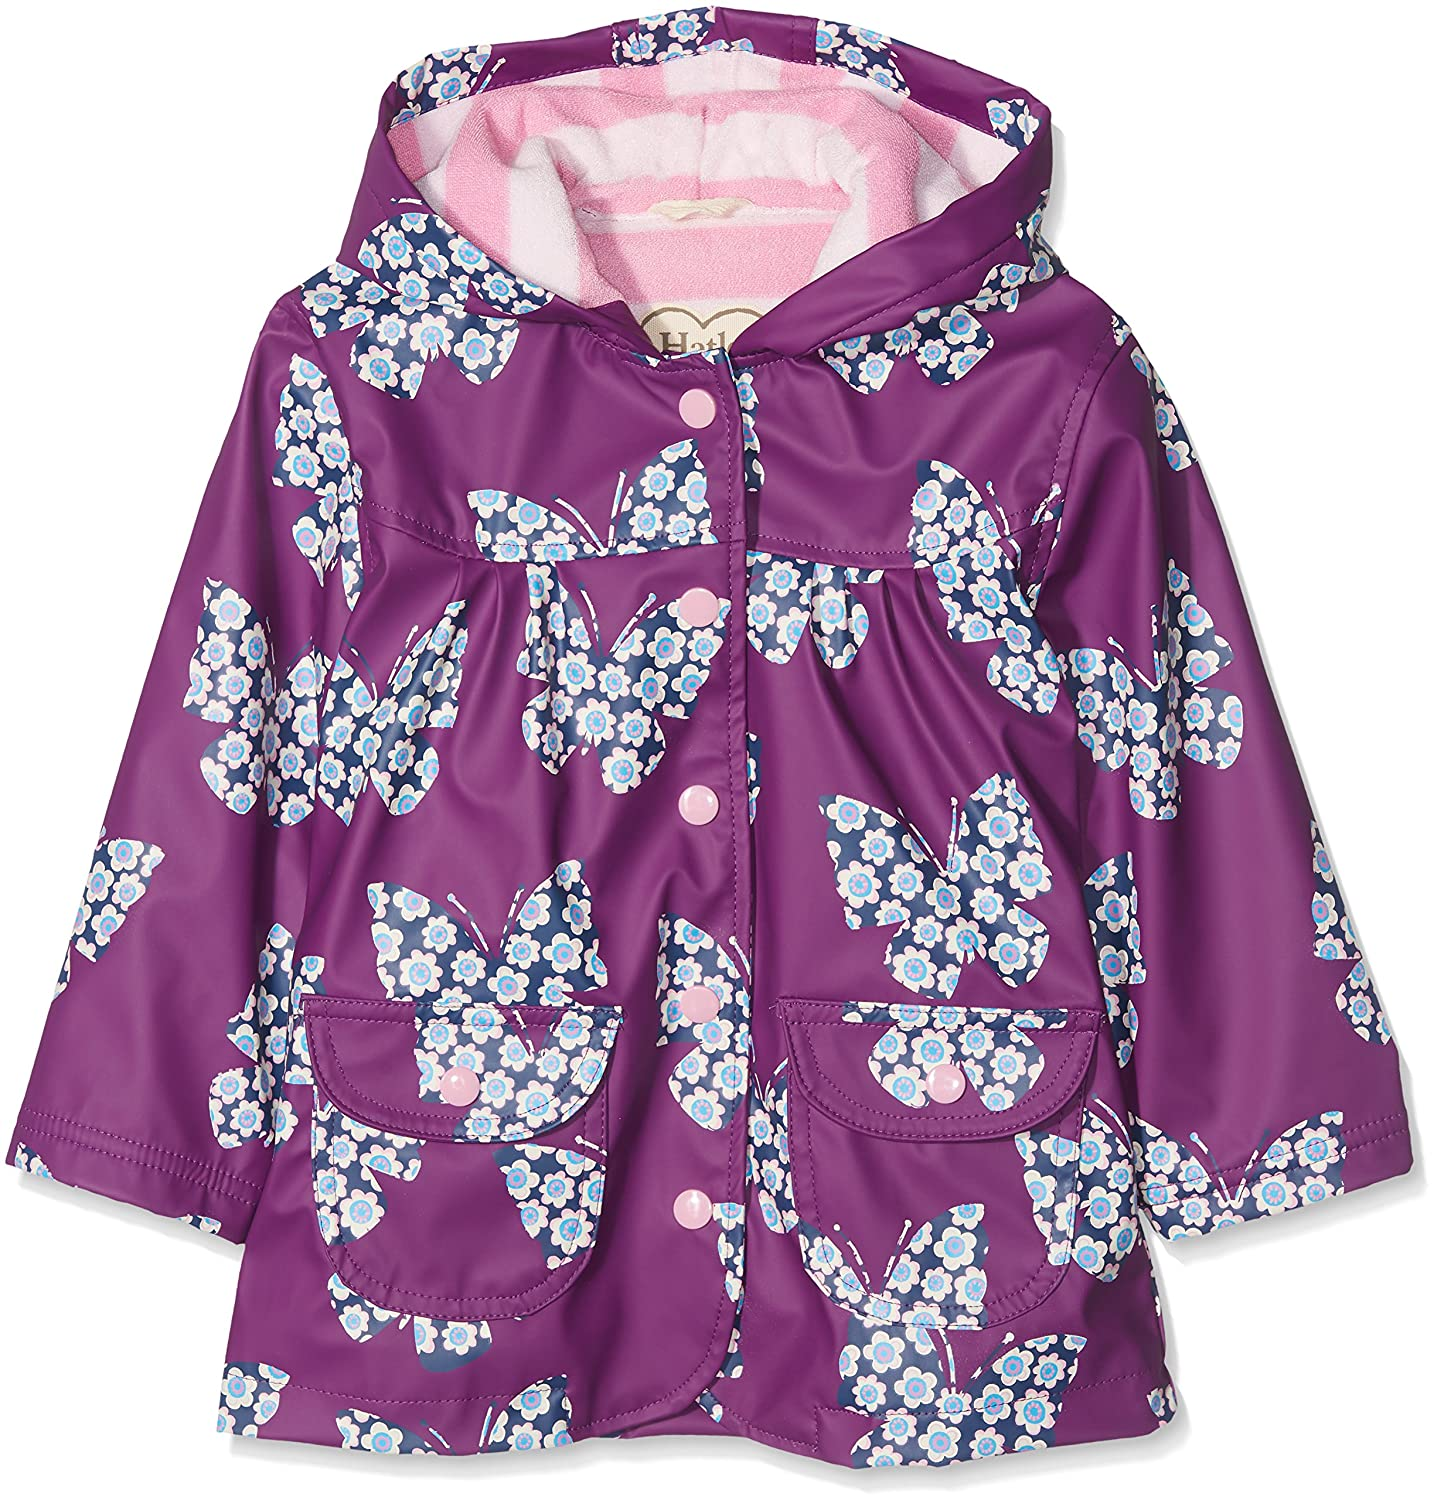 Hatley Girls Printed Raincoats RC5GAFL141